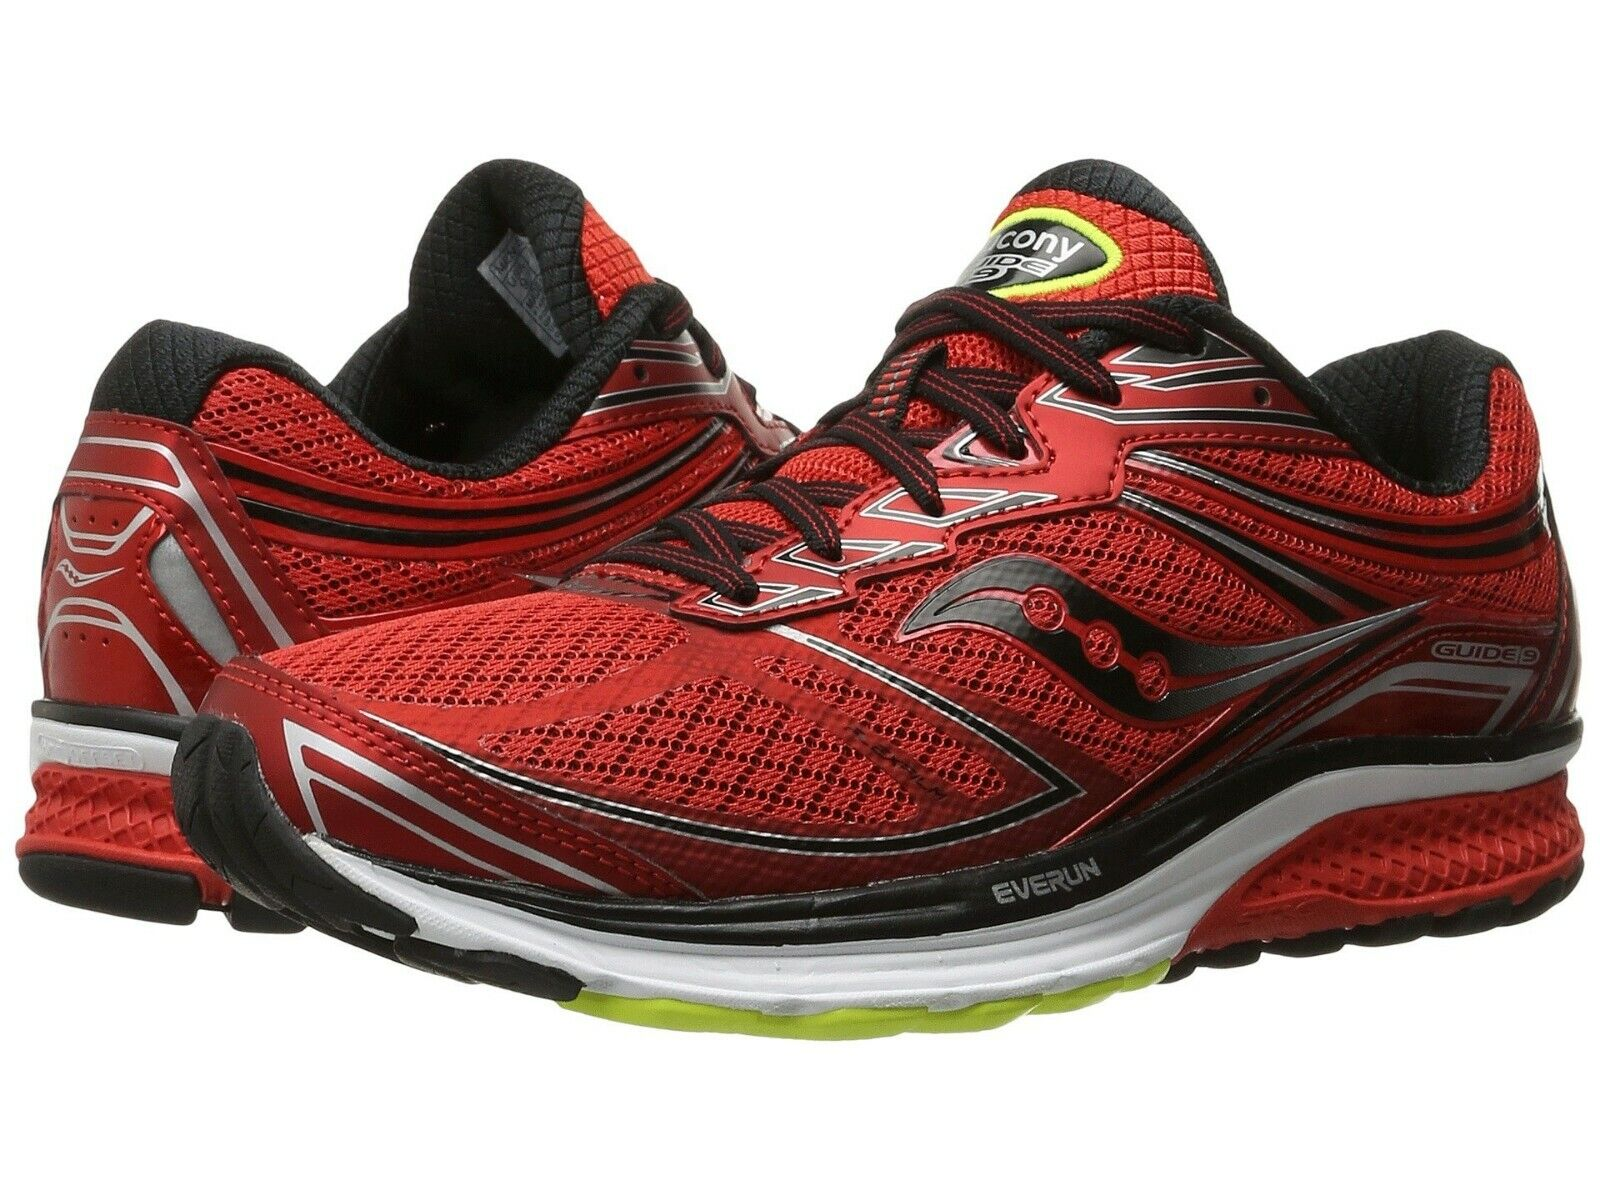 Saucony Men's Guide 9 Running shoes, S20295-6 ( Size 12.5 M )